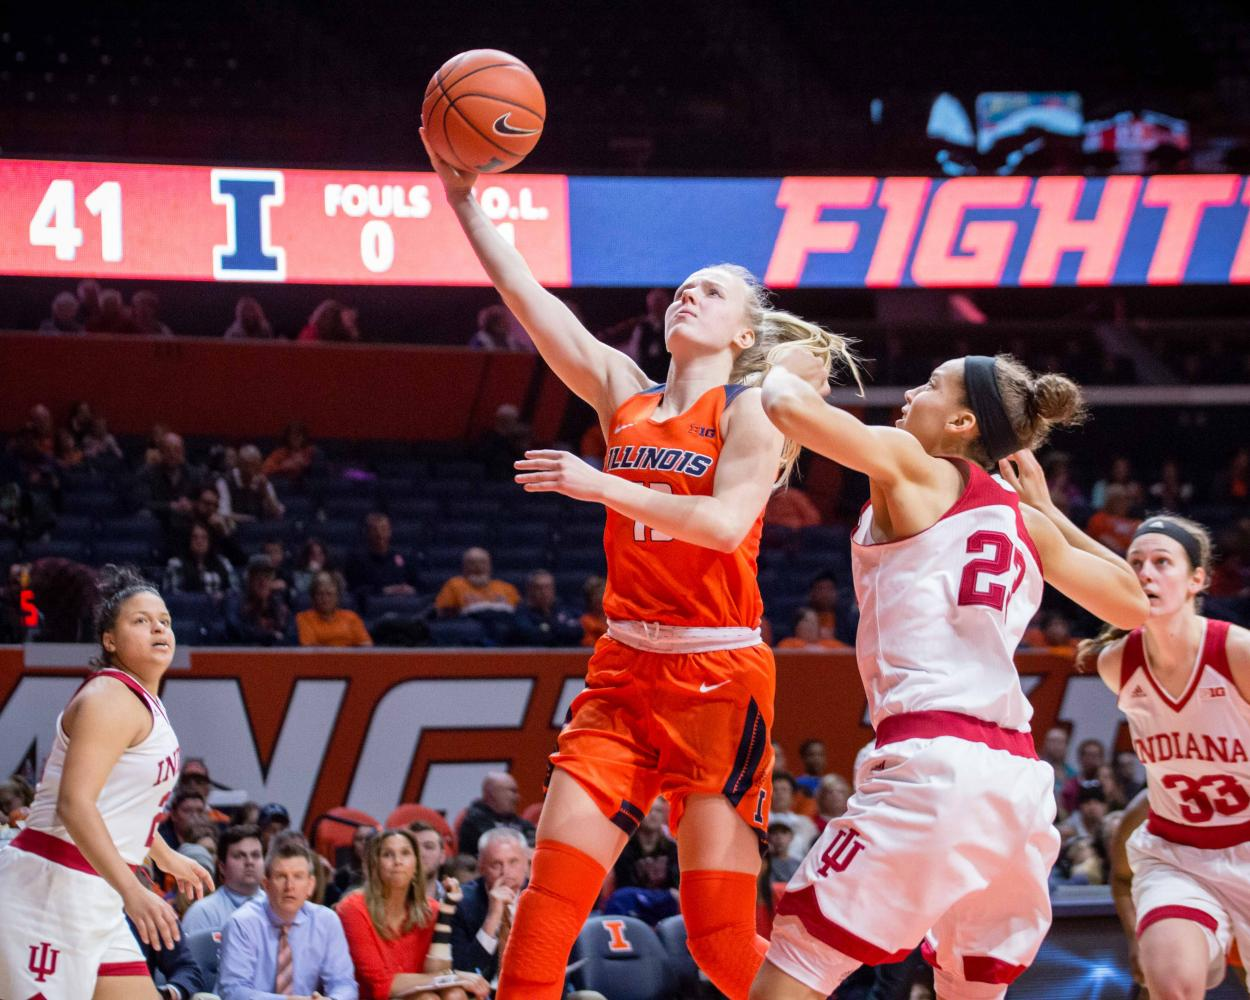 Illinois' Petra Holešínská goes up for a layup during the game against Indiana at State Farm Center Feb. 25.